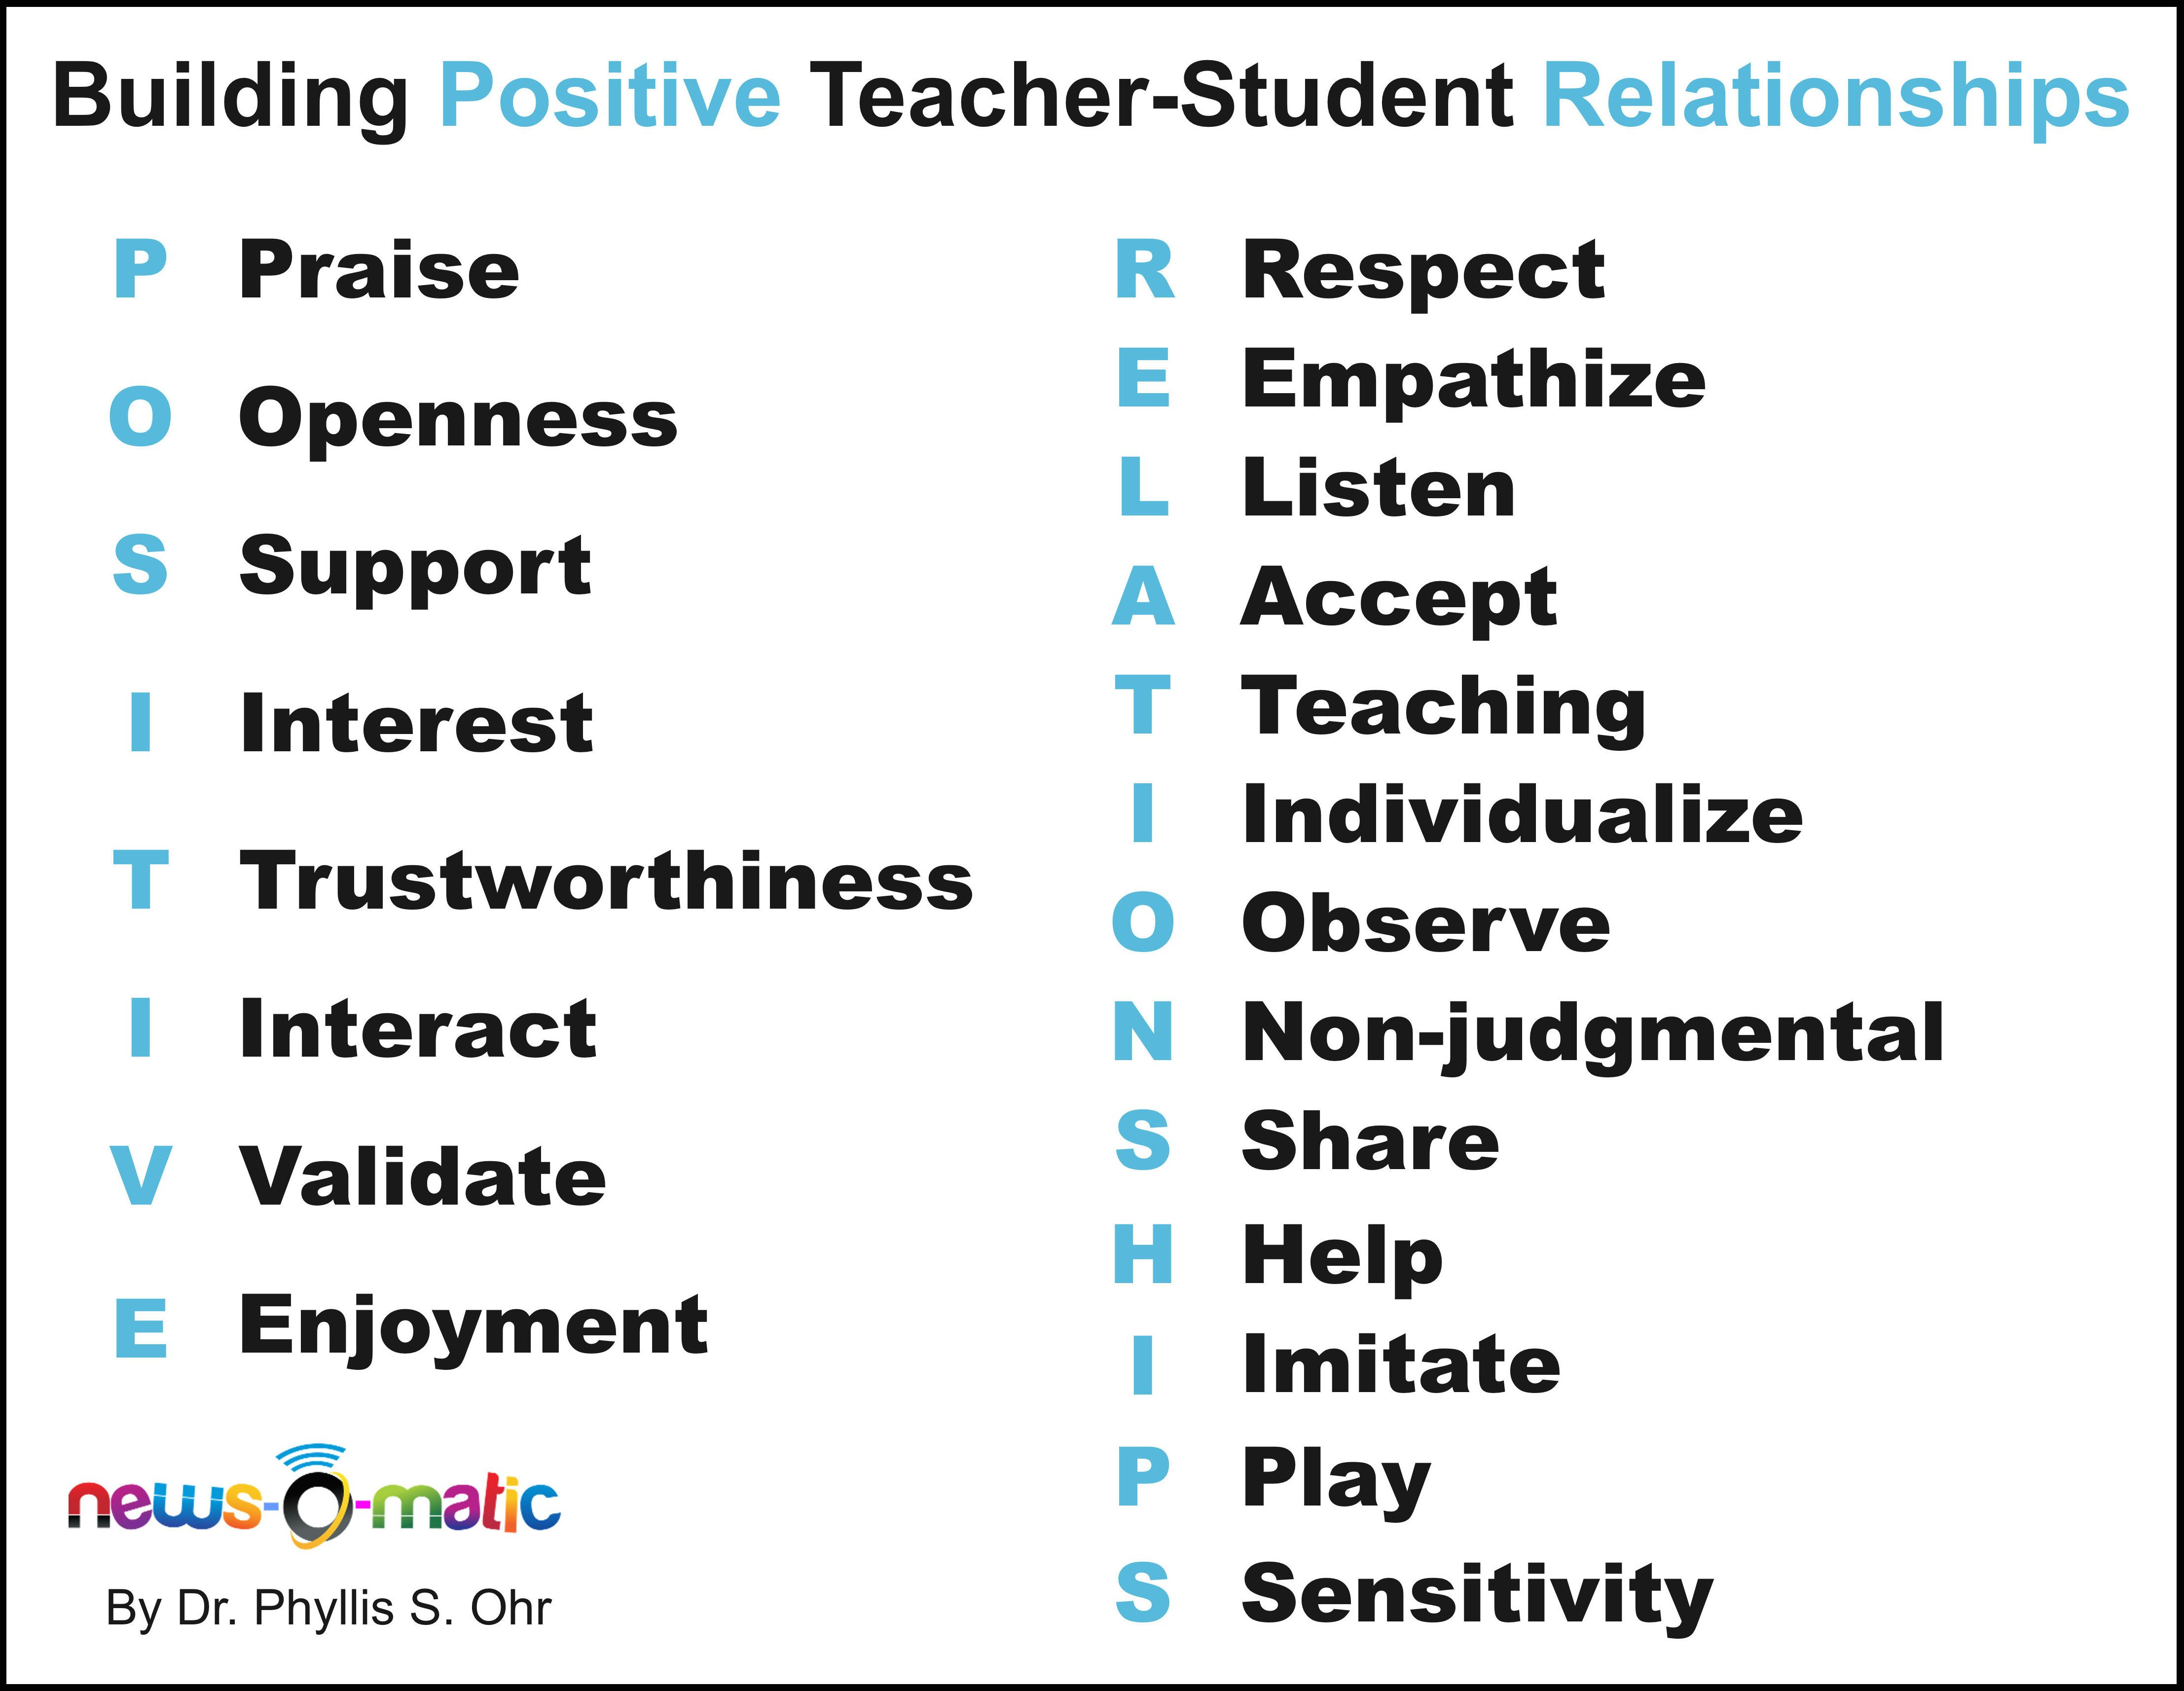 How to foster a positive relationship with students? Dr